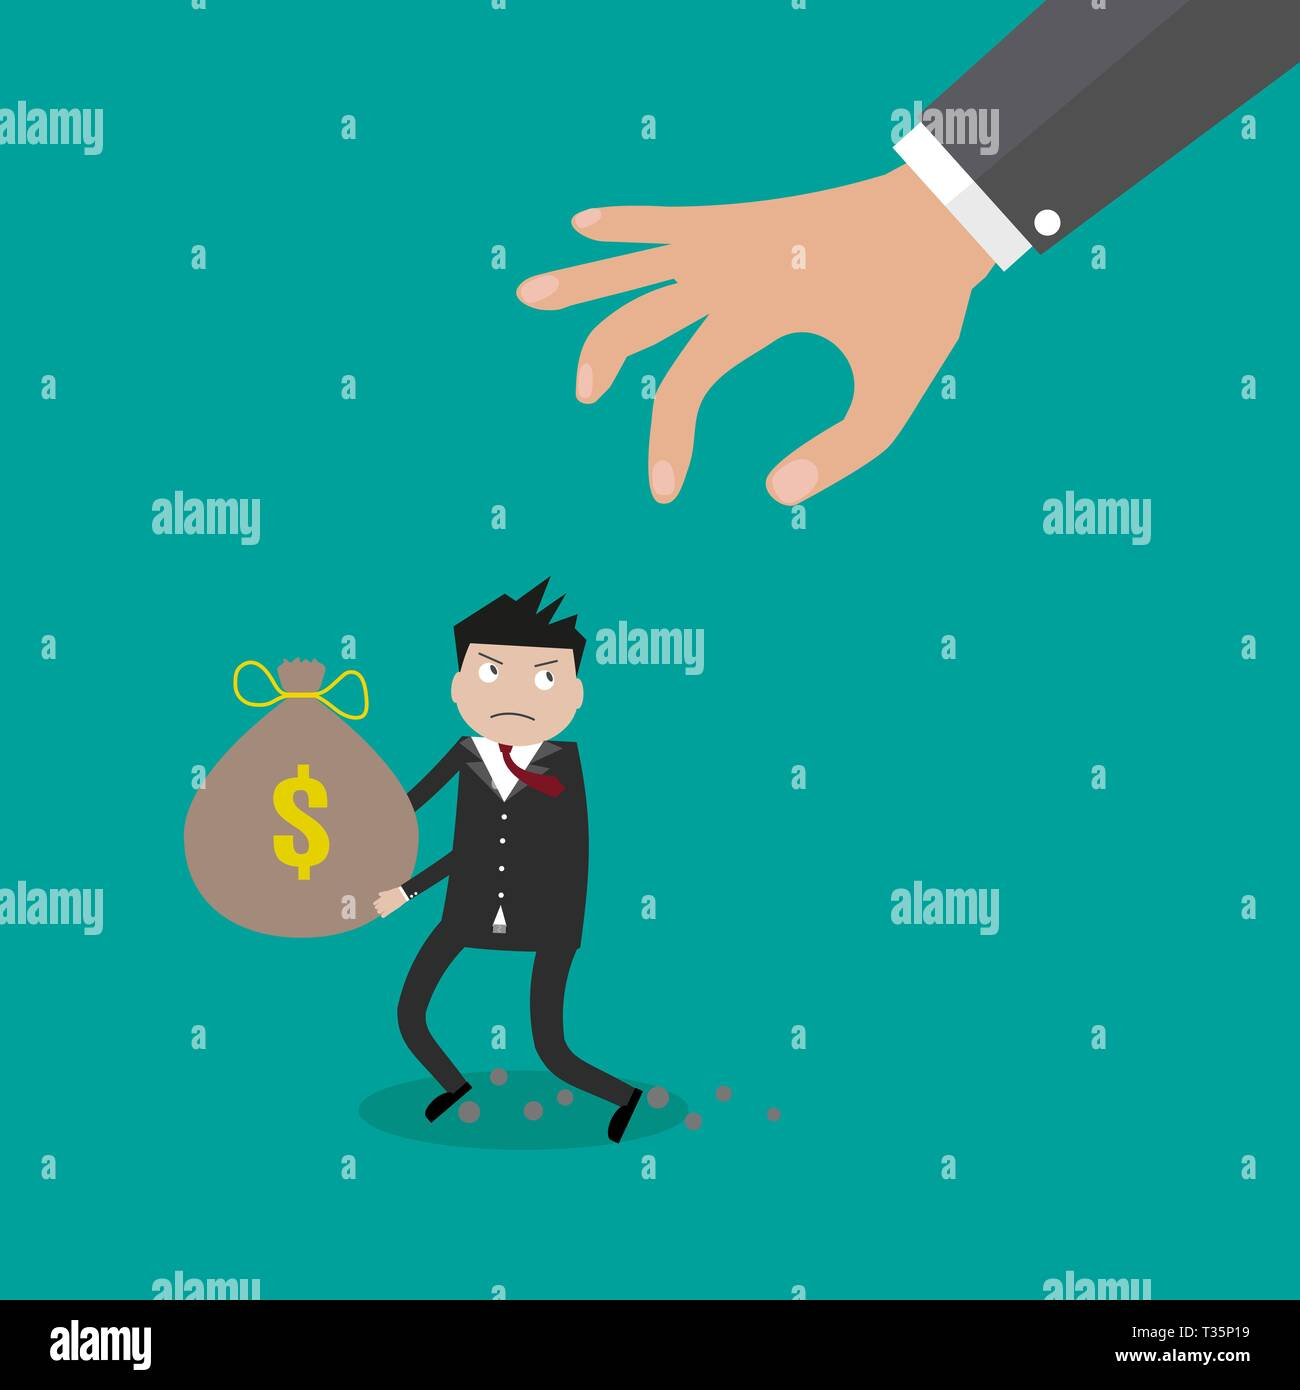 Cartoon hand tries to grab the bag of money running businessman. vector illustration in flat design on green background - Stock Vector